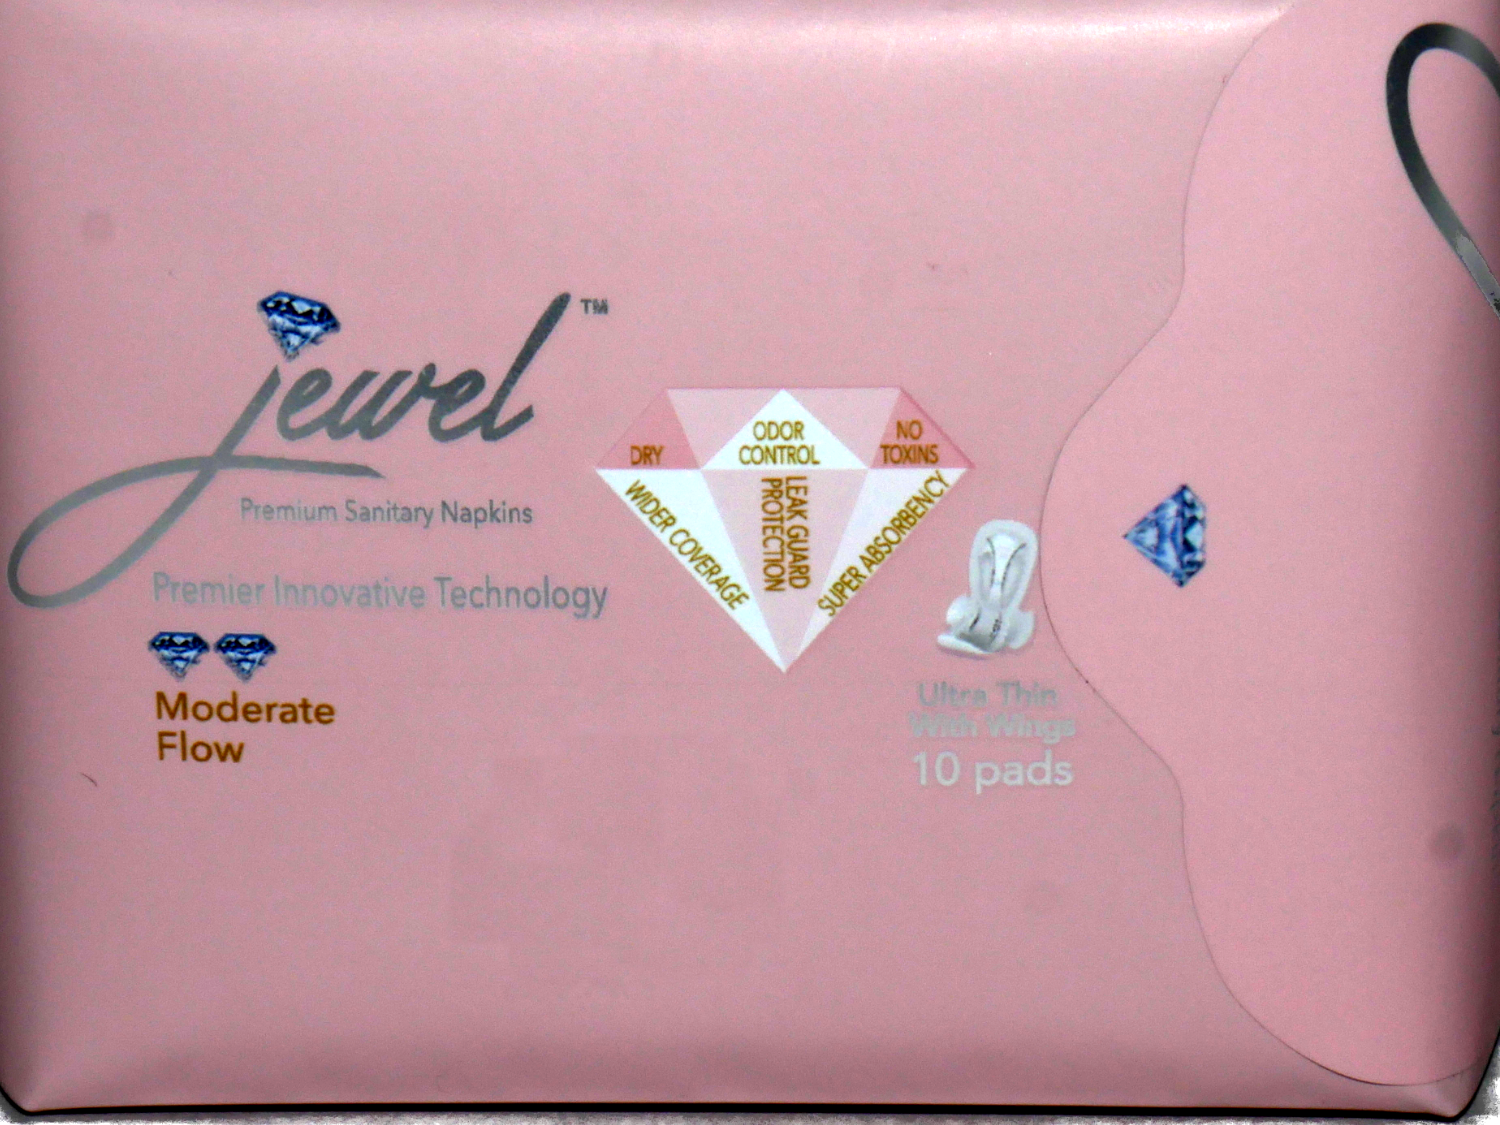 ​JEWEL PADS: DAY USE FOR MODERATE FLOW